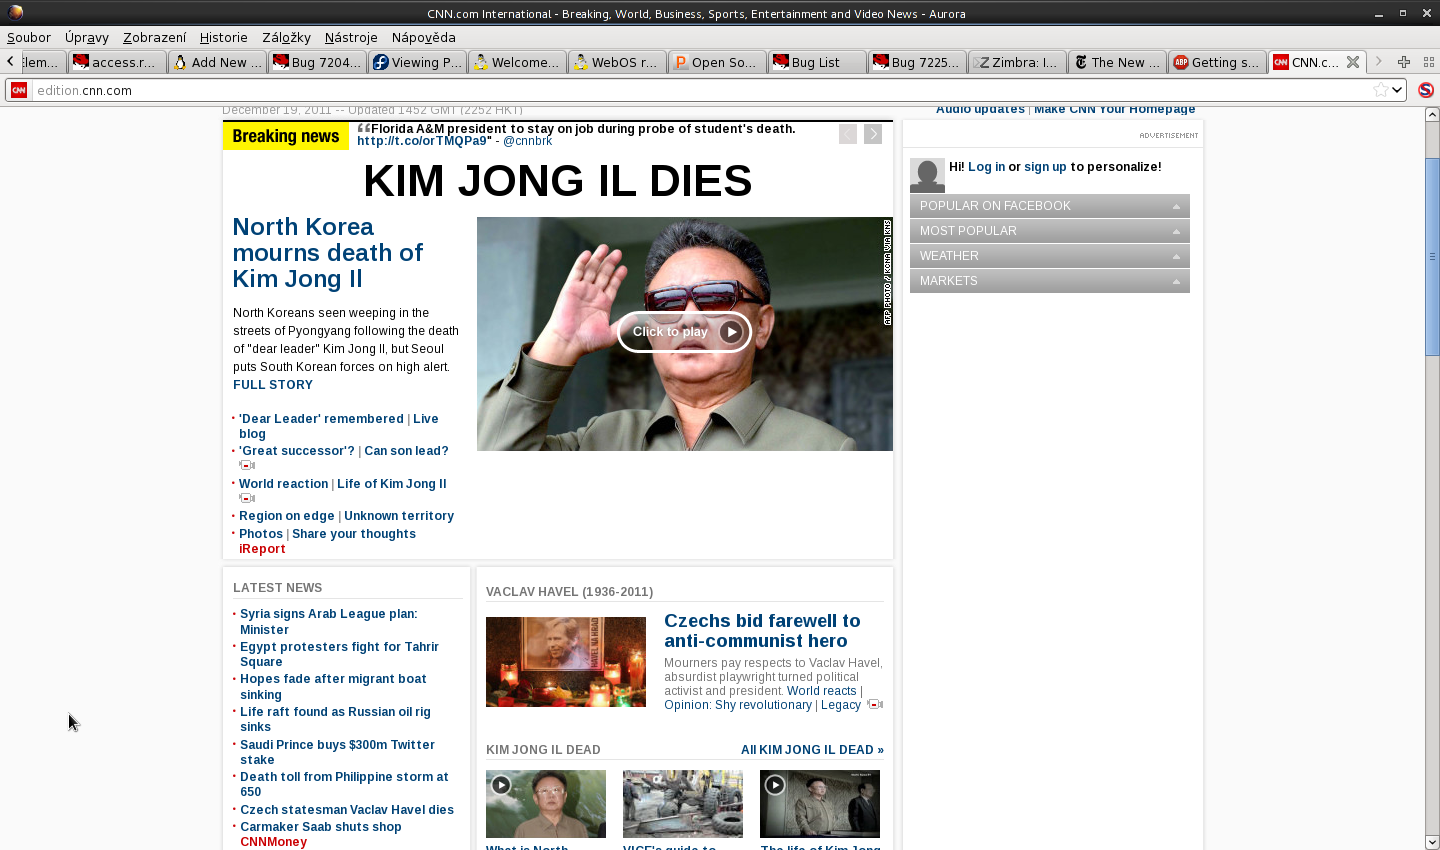 CNN front page informing about the death of Mr. Havel